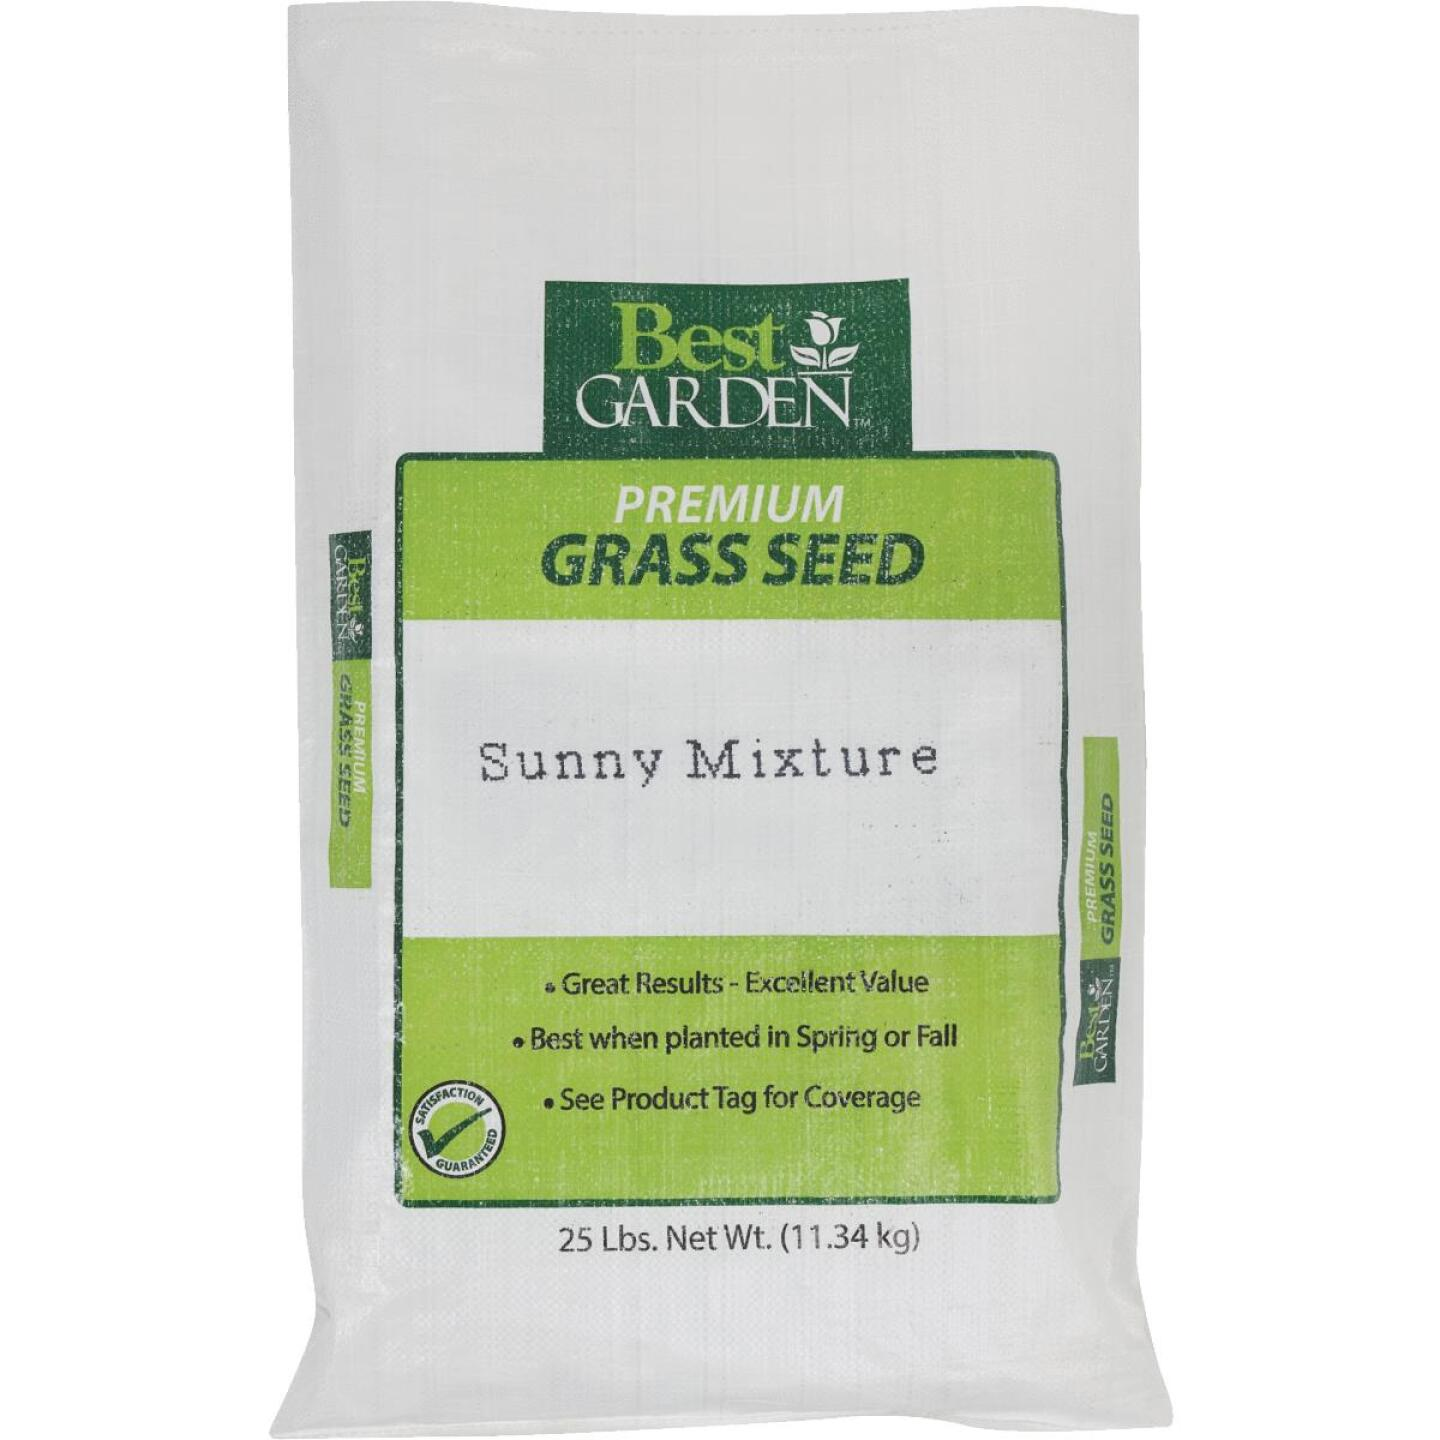 Best Garden 25 Lb. 7500 Sq. Ft. Coverage Full Sun Grass Seed Image 1